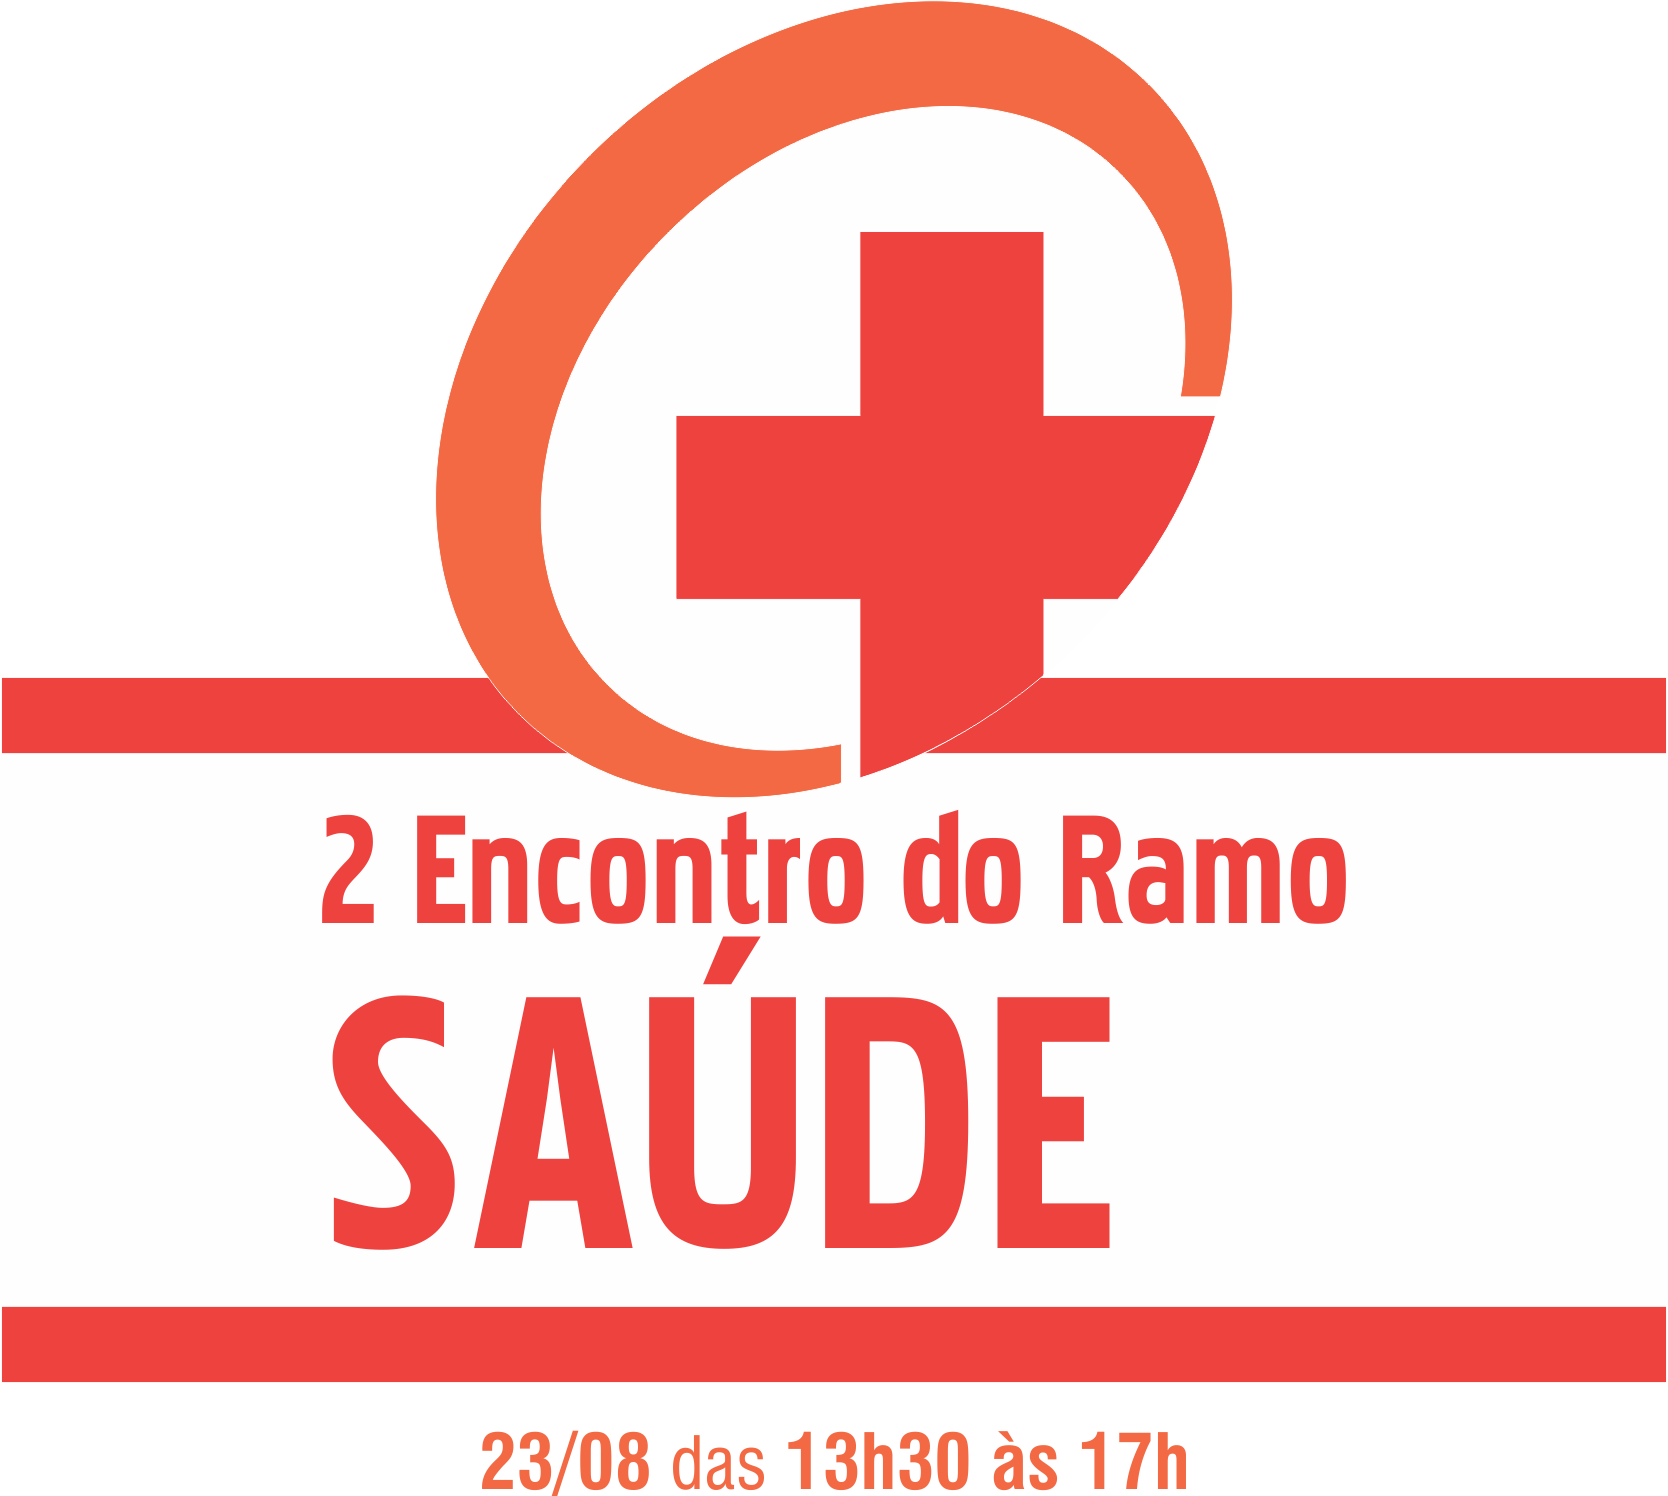 encontro-do-ramo-saude-31050-6196018.png